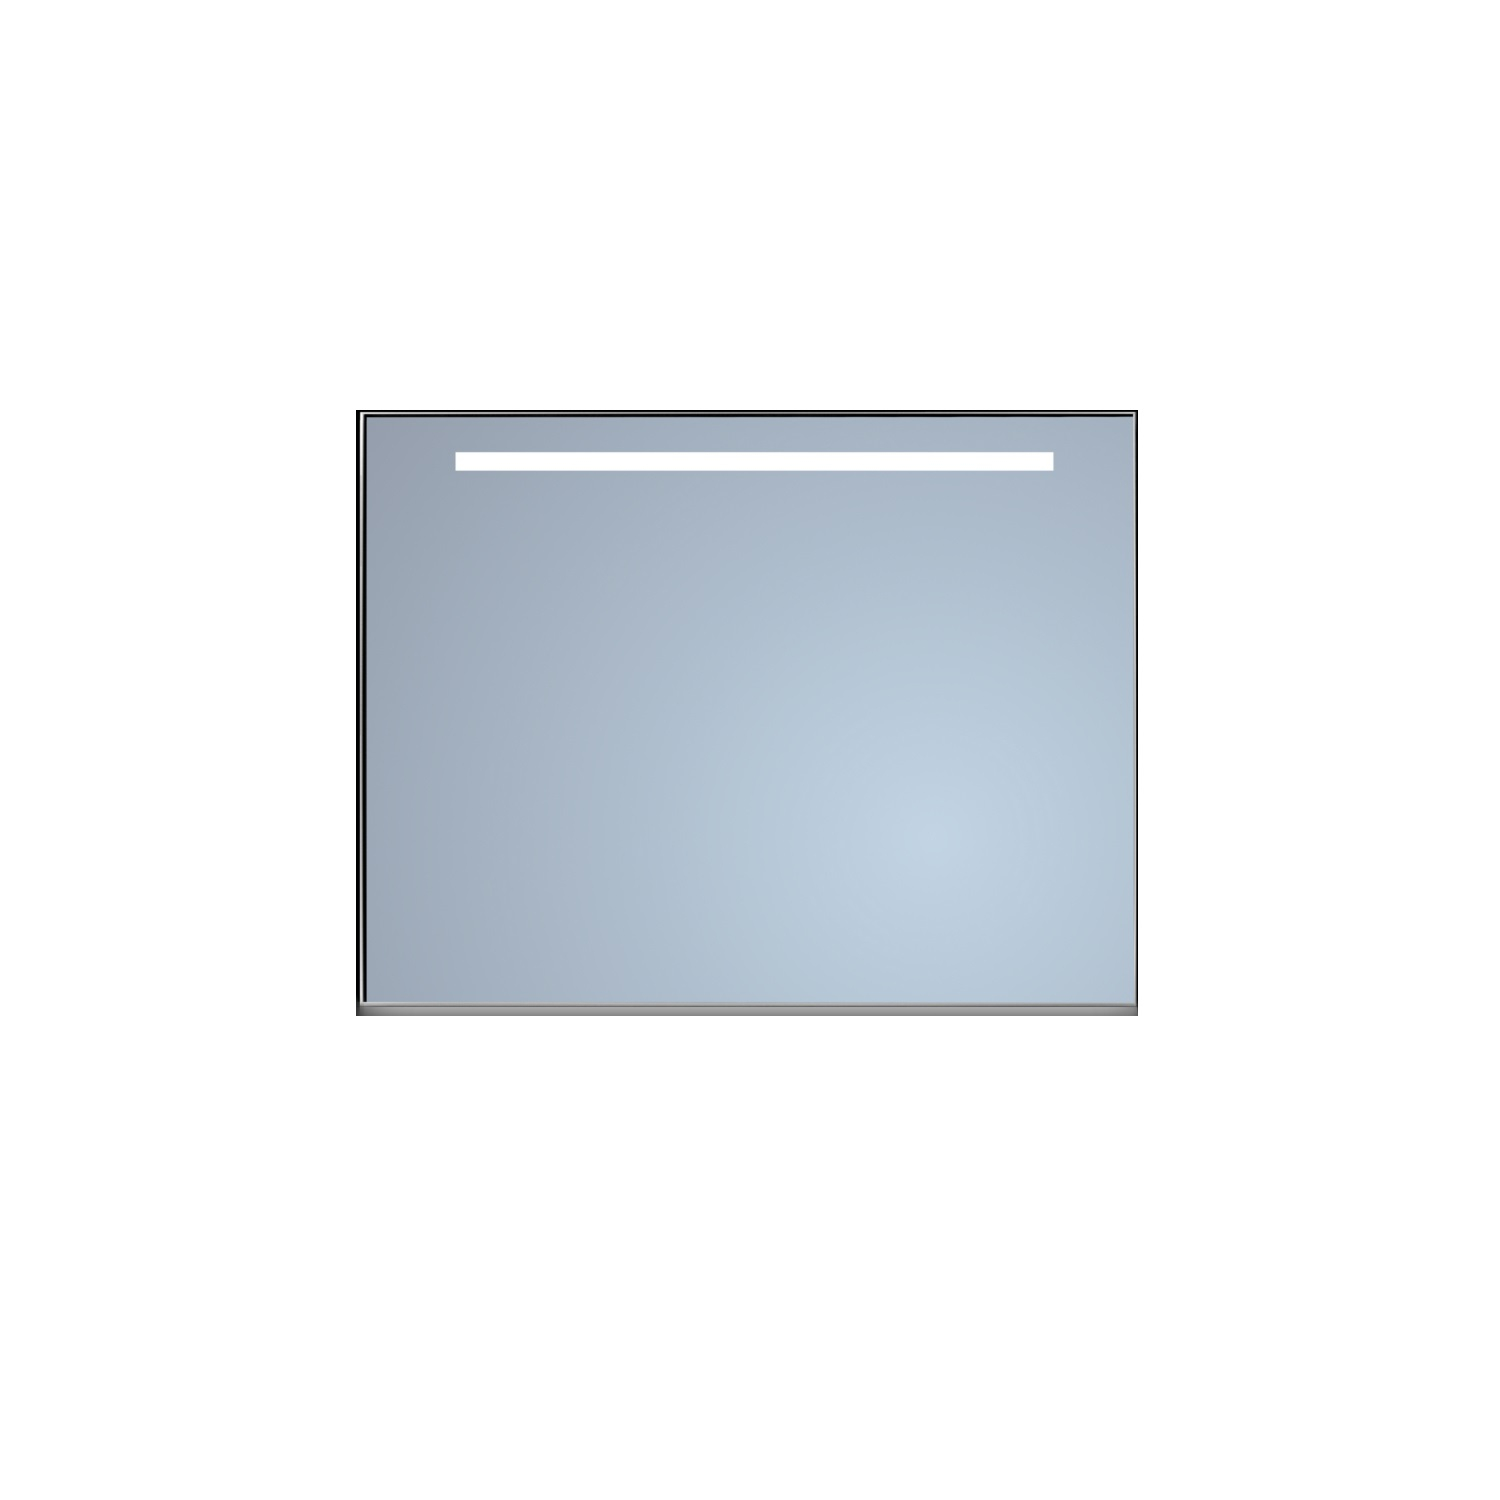 Badkamerspiegel Sanicare Q-Mirrors Ambiance en 'Cold White' LED-verlichting 70x80x3,5 Alu Omlijsting